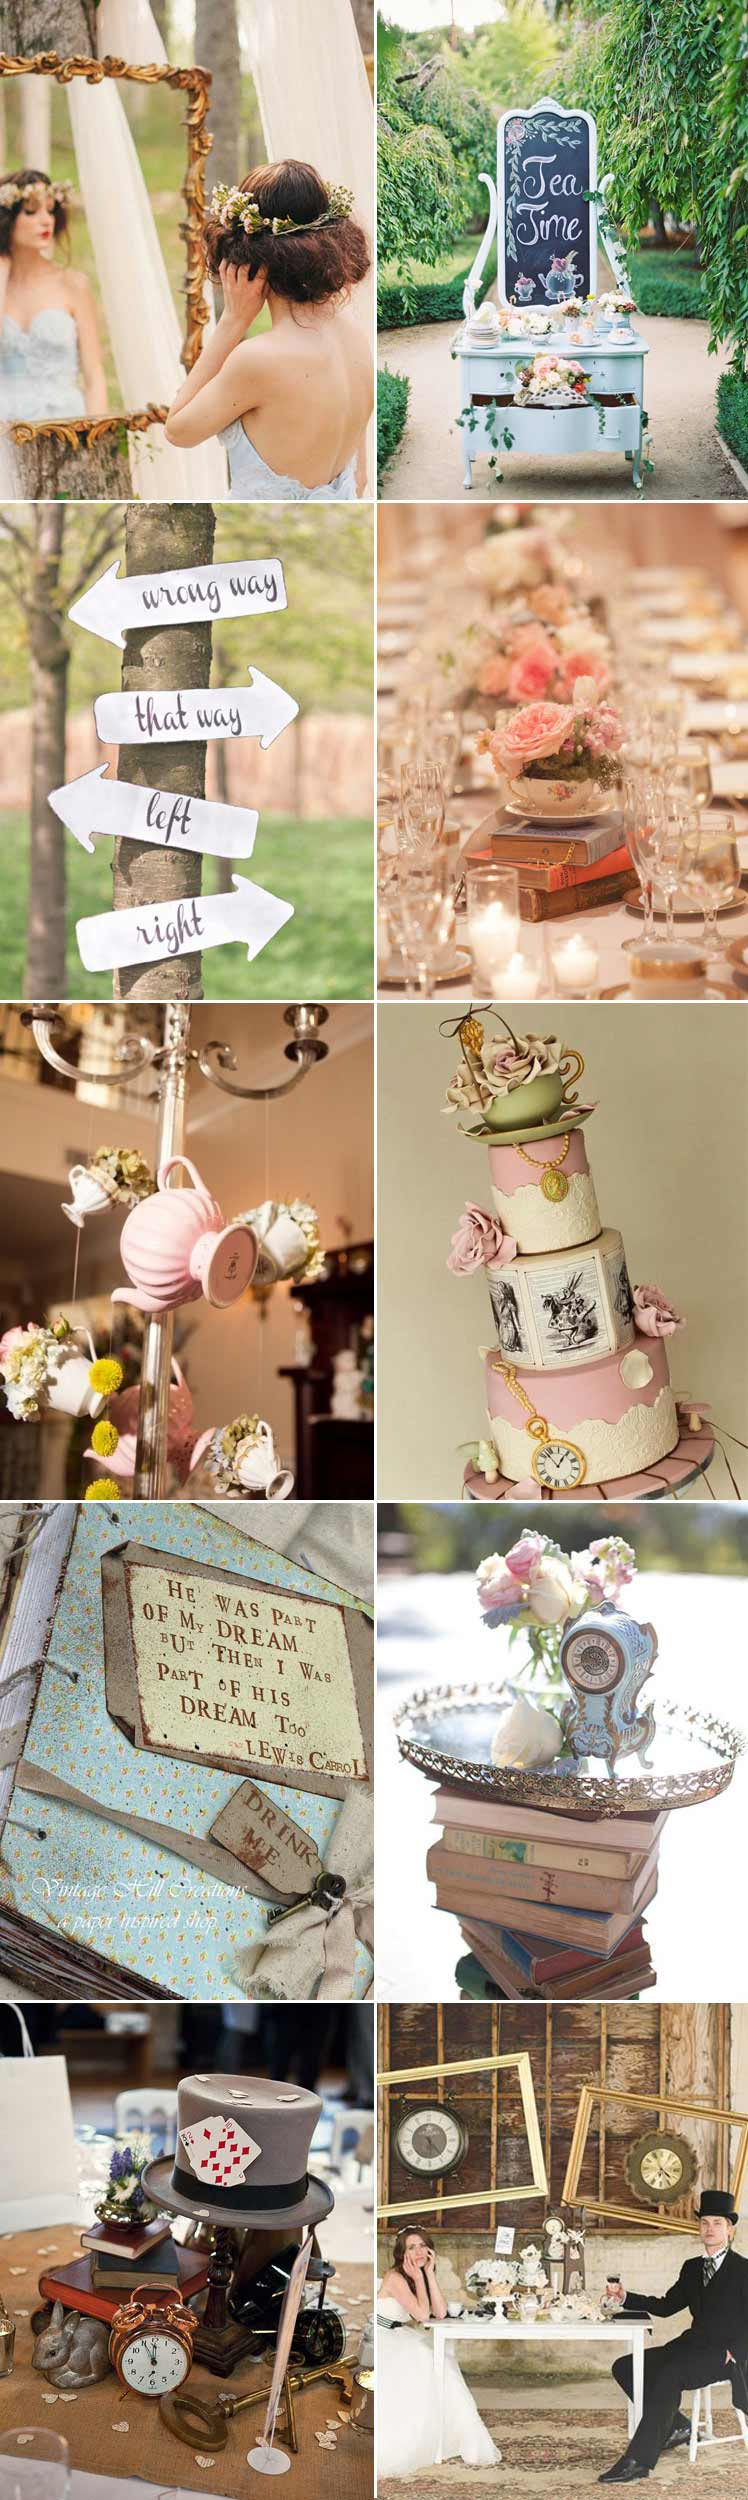 Inspiration for an Alice in Wonderland wedding day